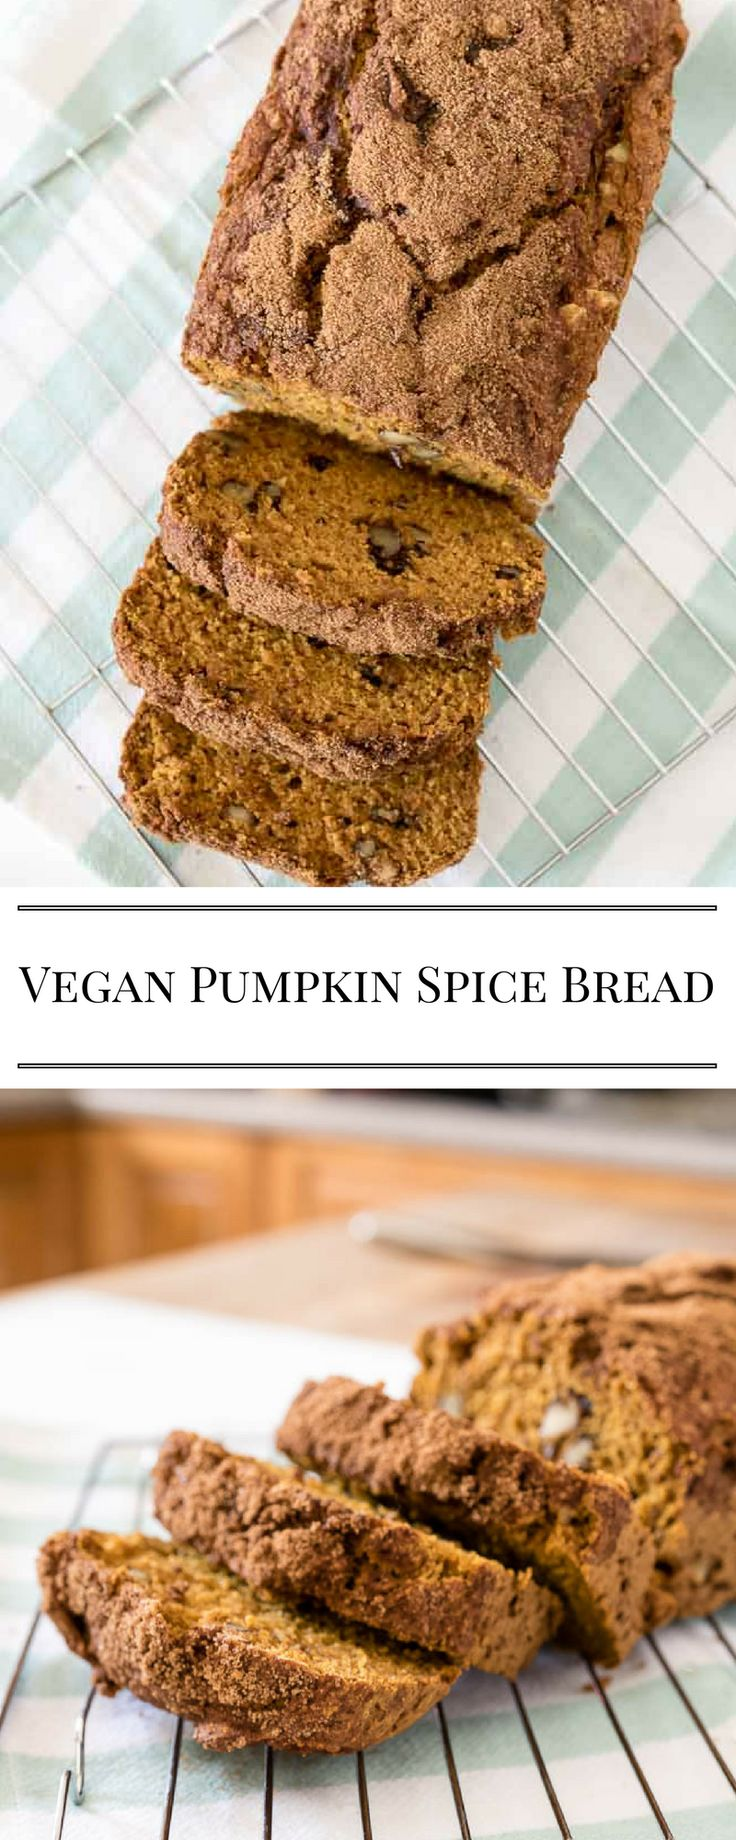 Vegan Pumpkin Spice Bread - the whole house smells so good when this bread is baking!  Love the crunchy sugar topping.